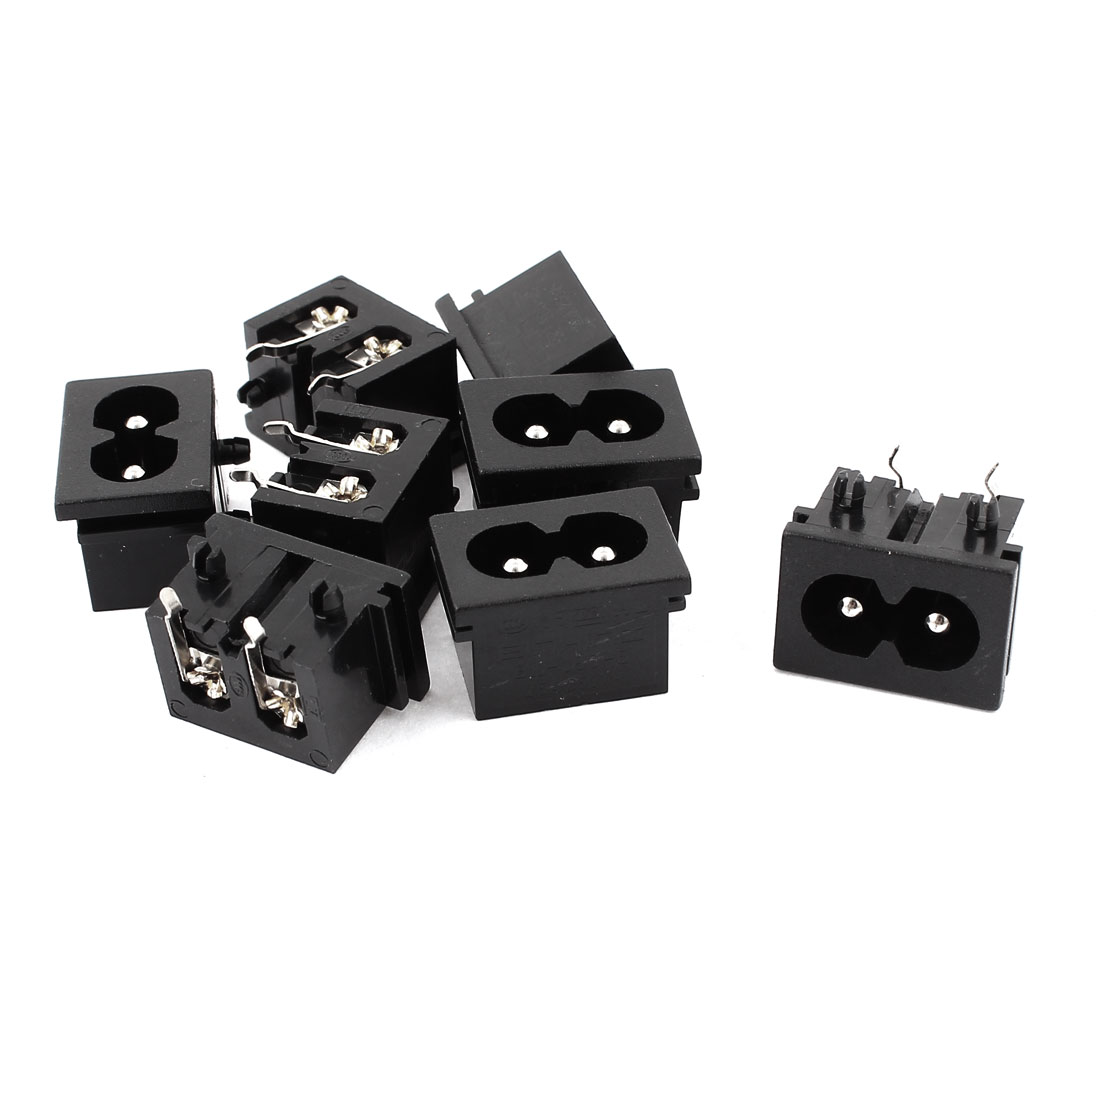 AC 250V 2.5A IEC320 C8 Male PCB Mount Inlet Power Socket Black 8Pcs